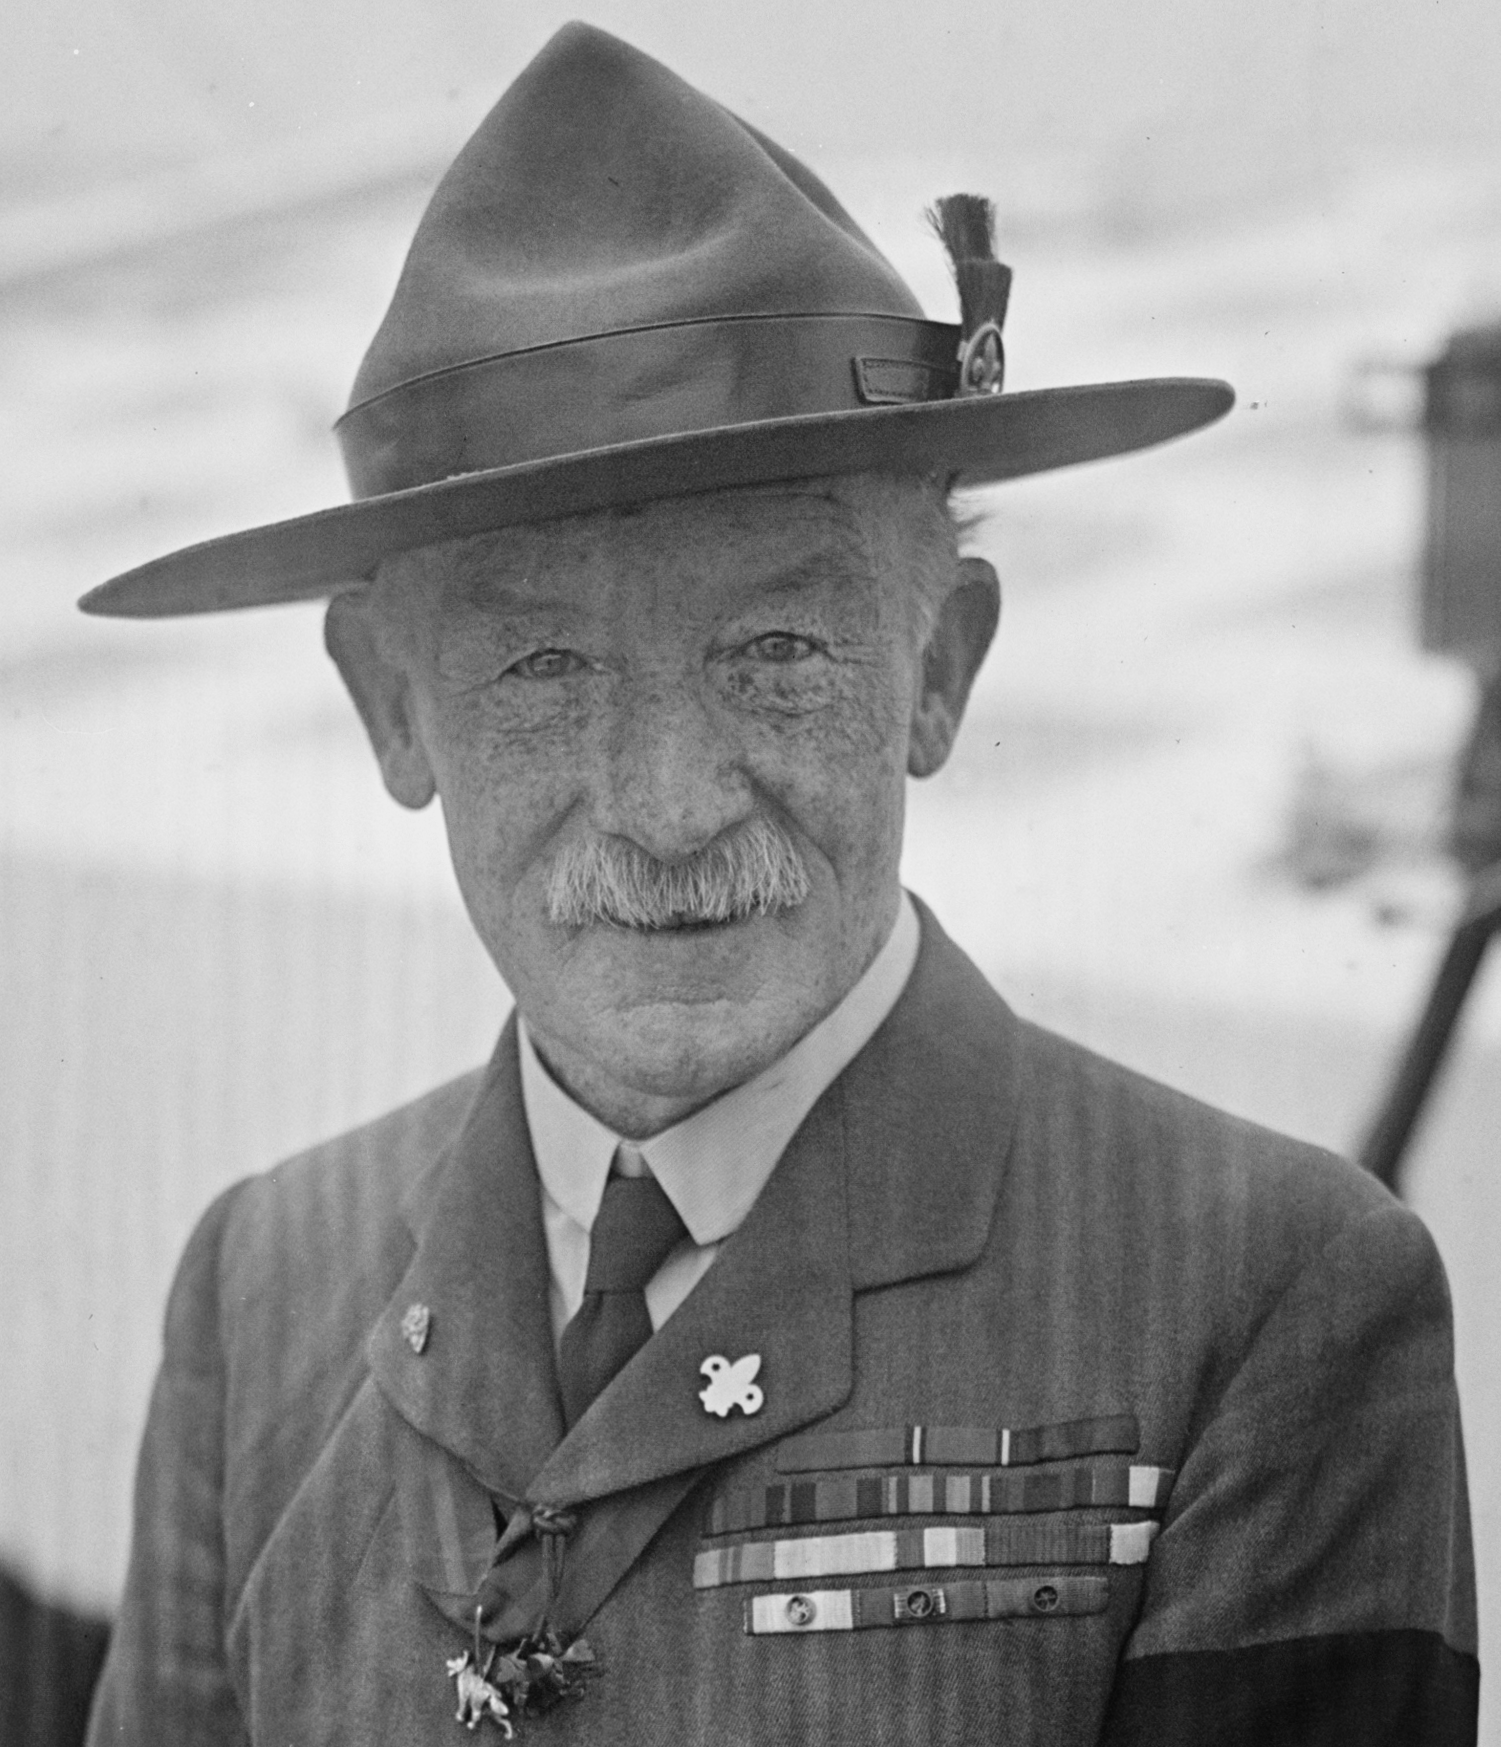 http://upload.wikimedia.org/wikipedia/commons/7/72/Baden-Powell_ggbain-39190_(cropped).png